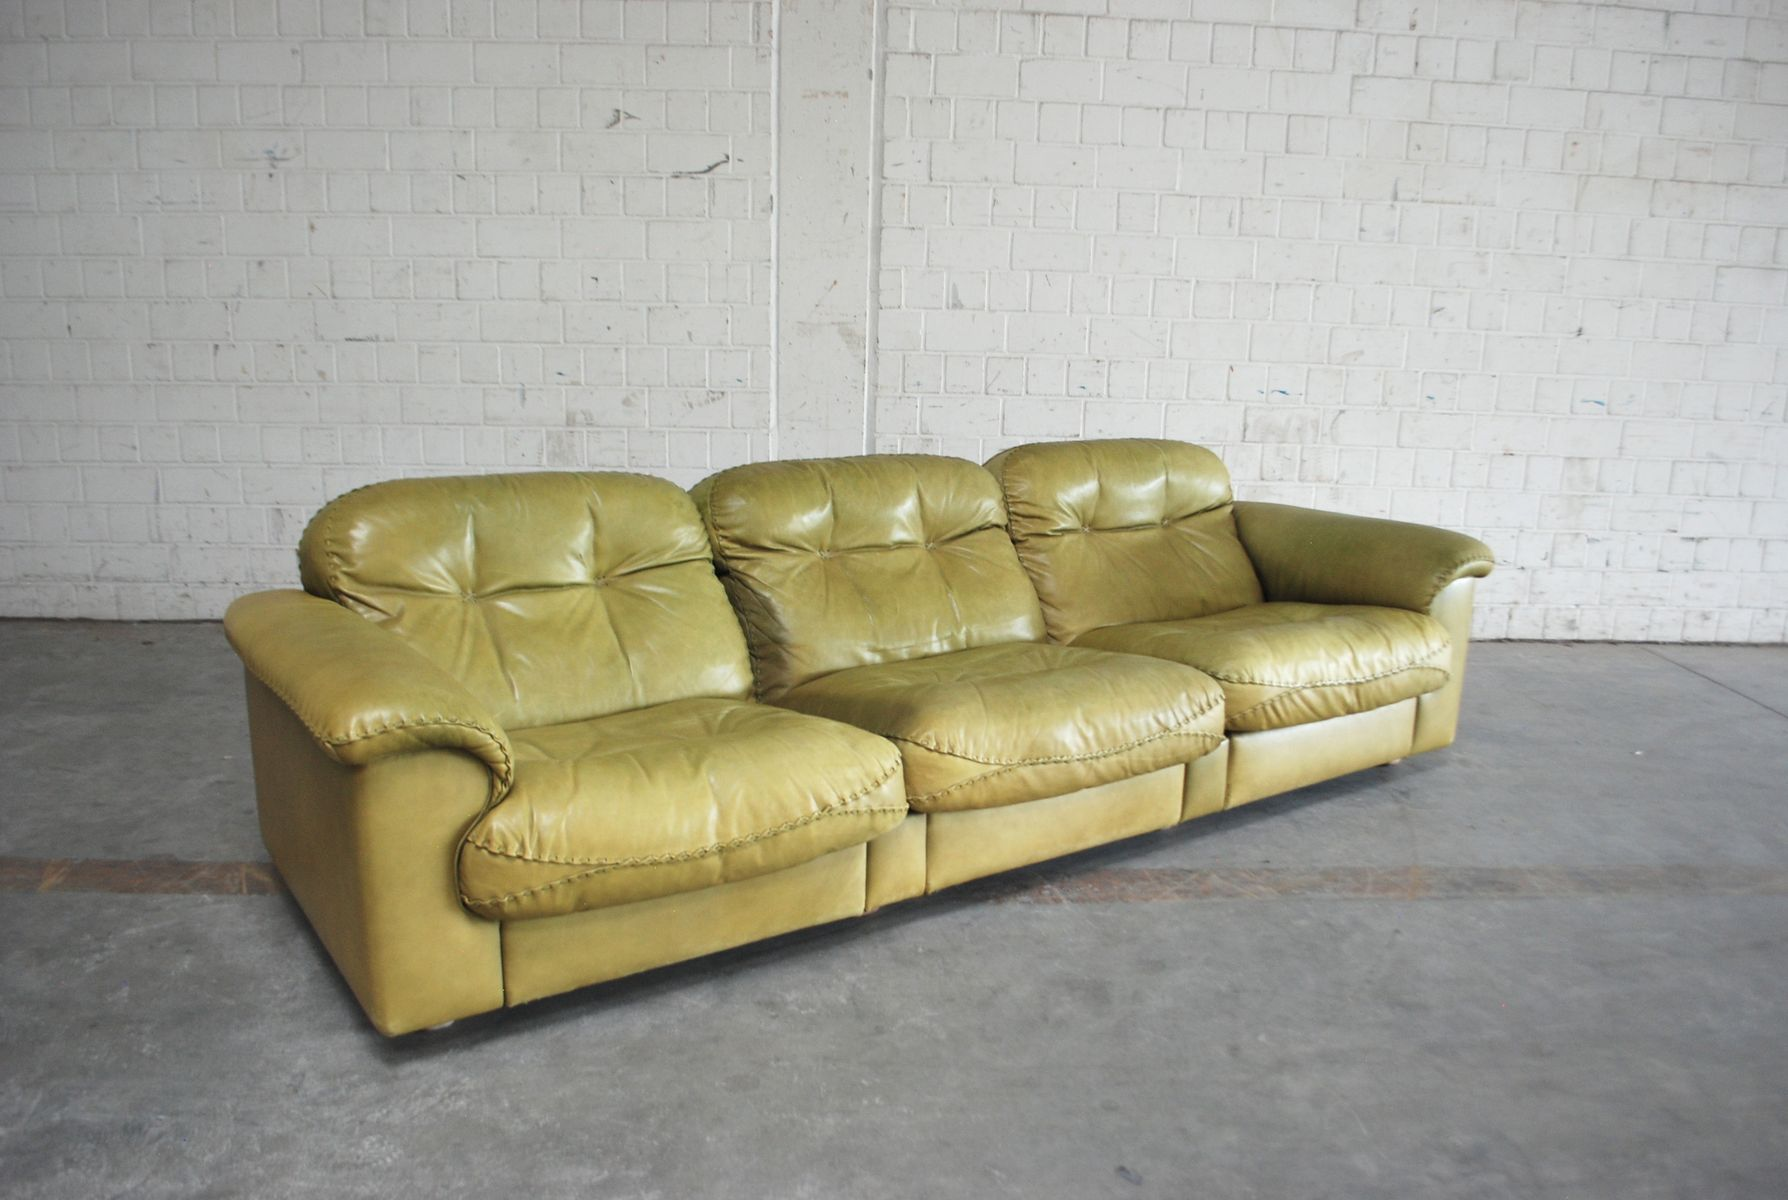 de sede sofa vintage decorative throws for sofas ds 101 olive green leather from